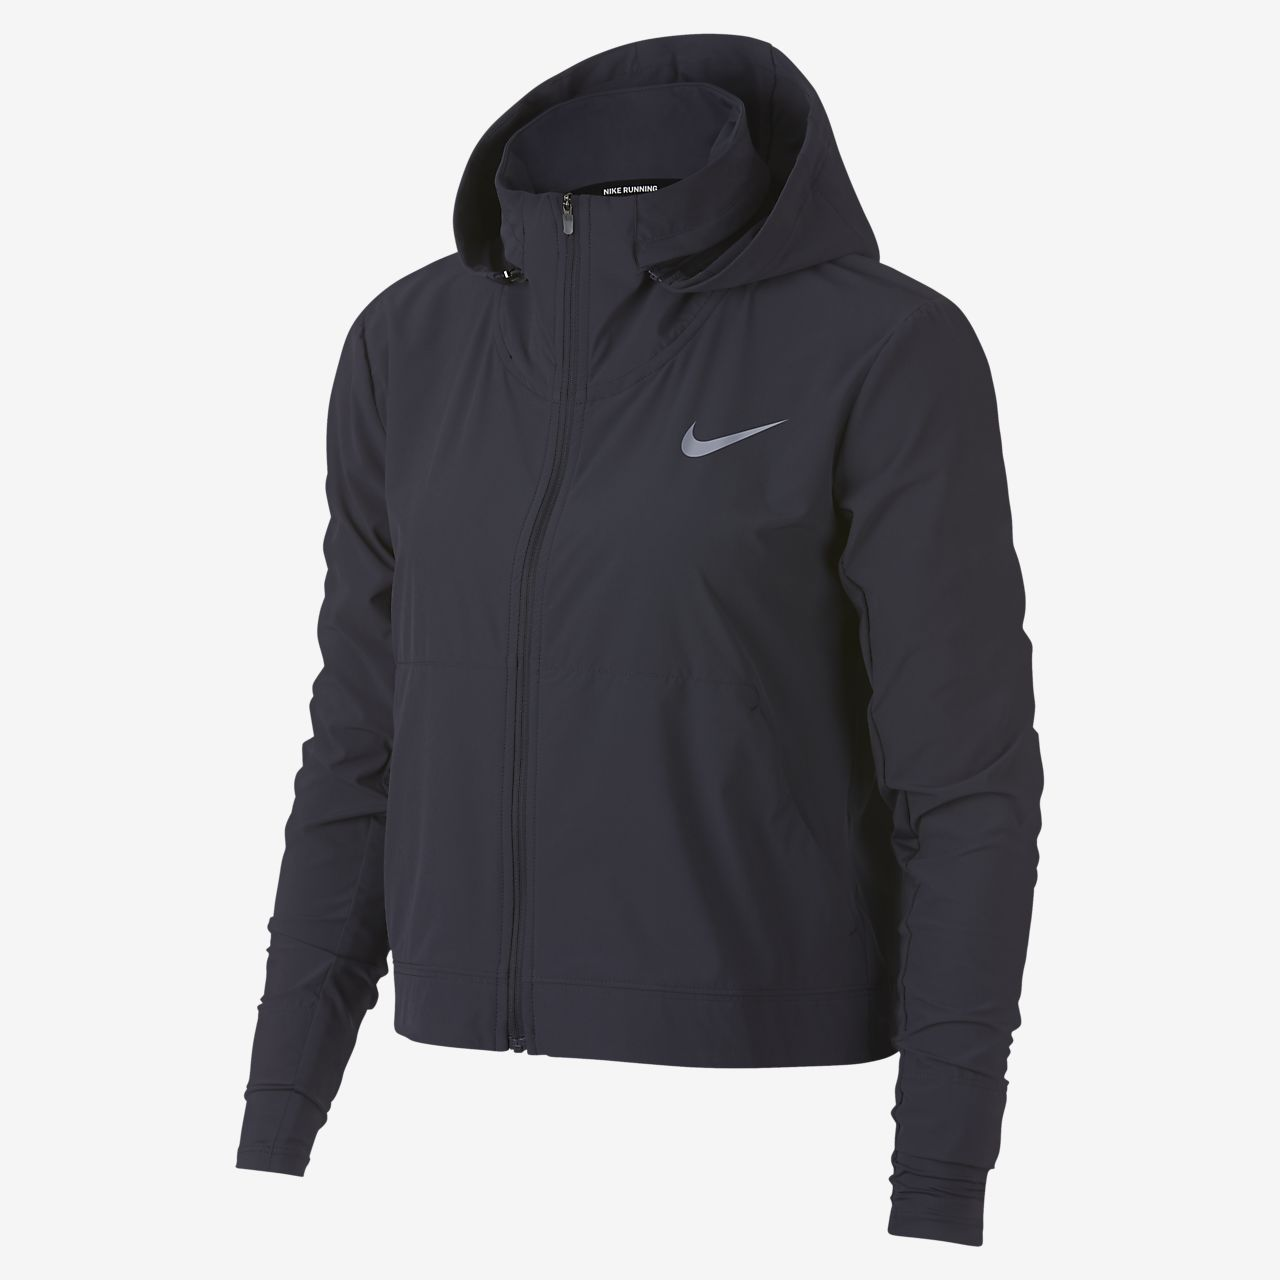 5ff66b3f04 Nike Swift Women s Running Jacket. Nike.com AE